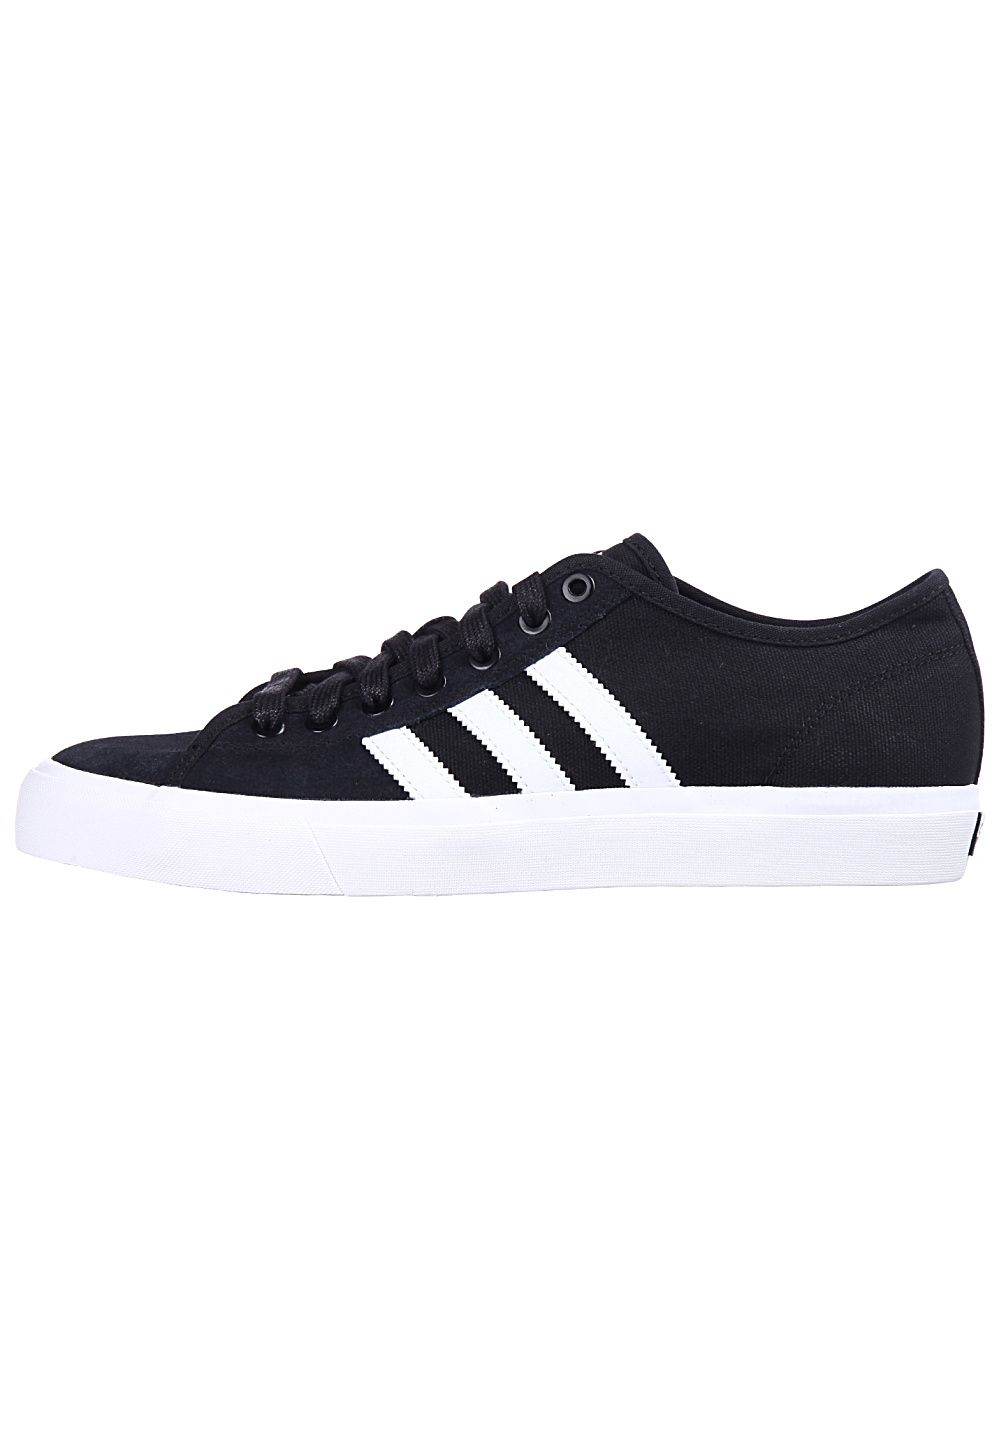 huge selection of 57829 71a44 Adidas Skateboarding Matchcourt RX - Baskets pour Homme - Noir